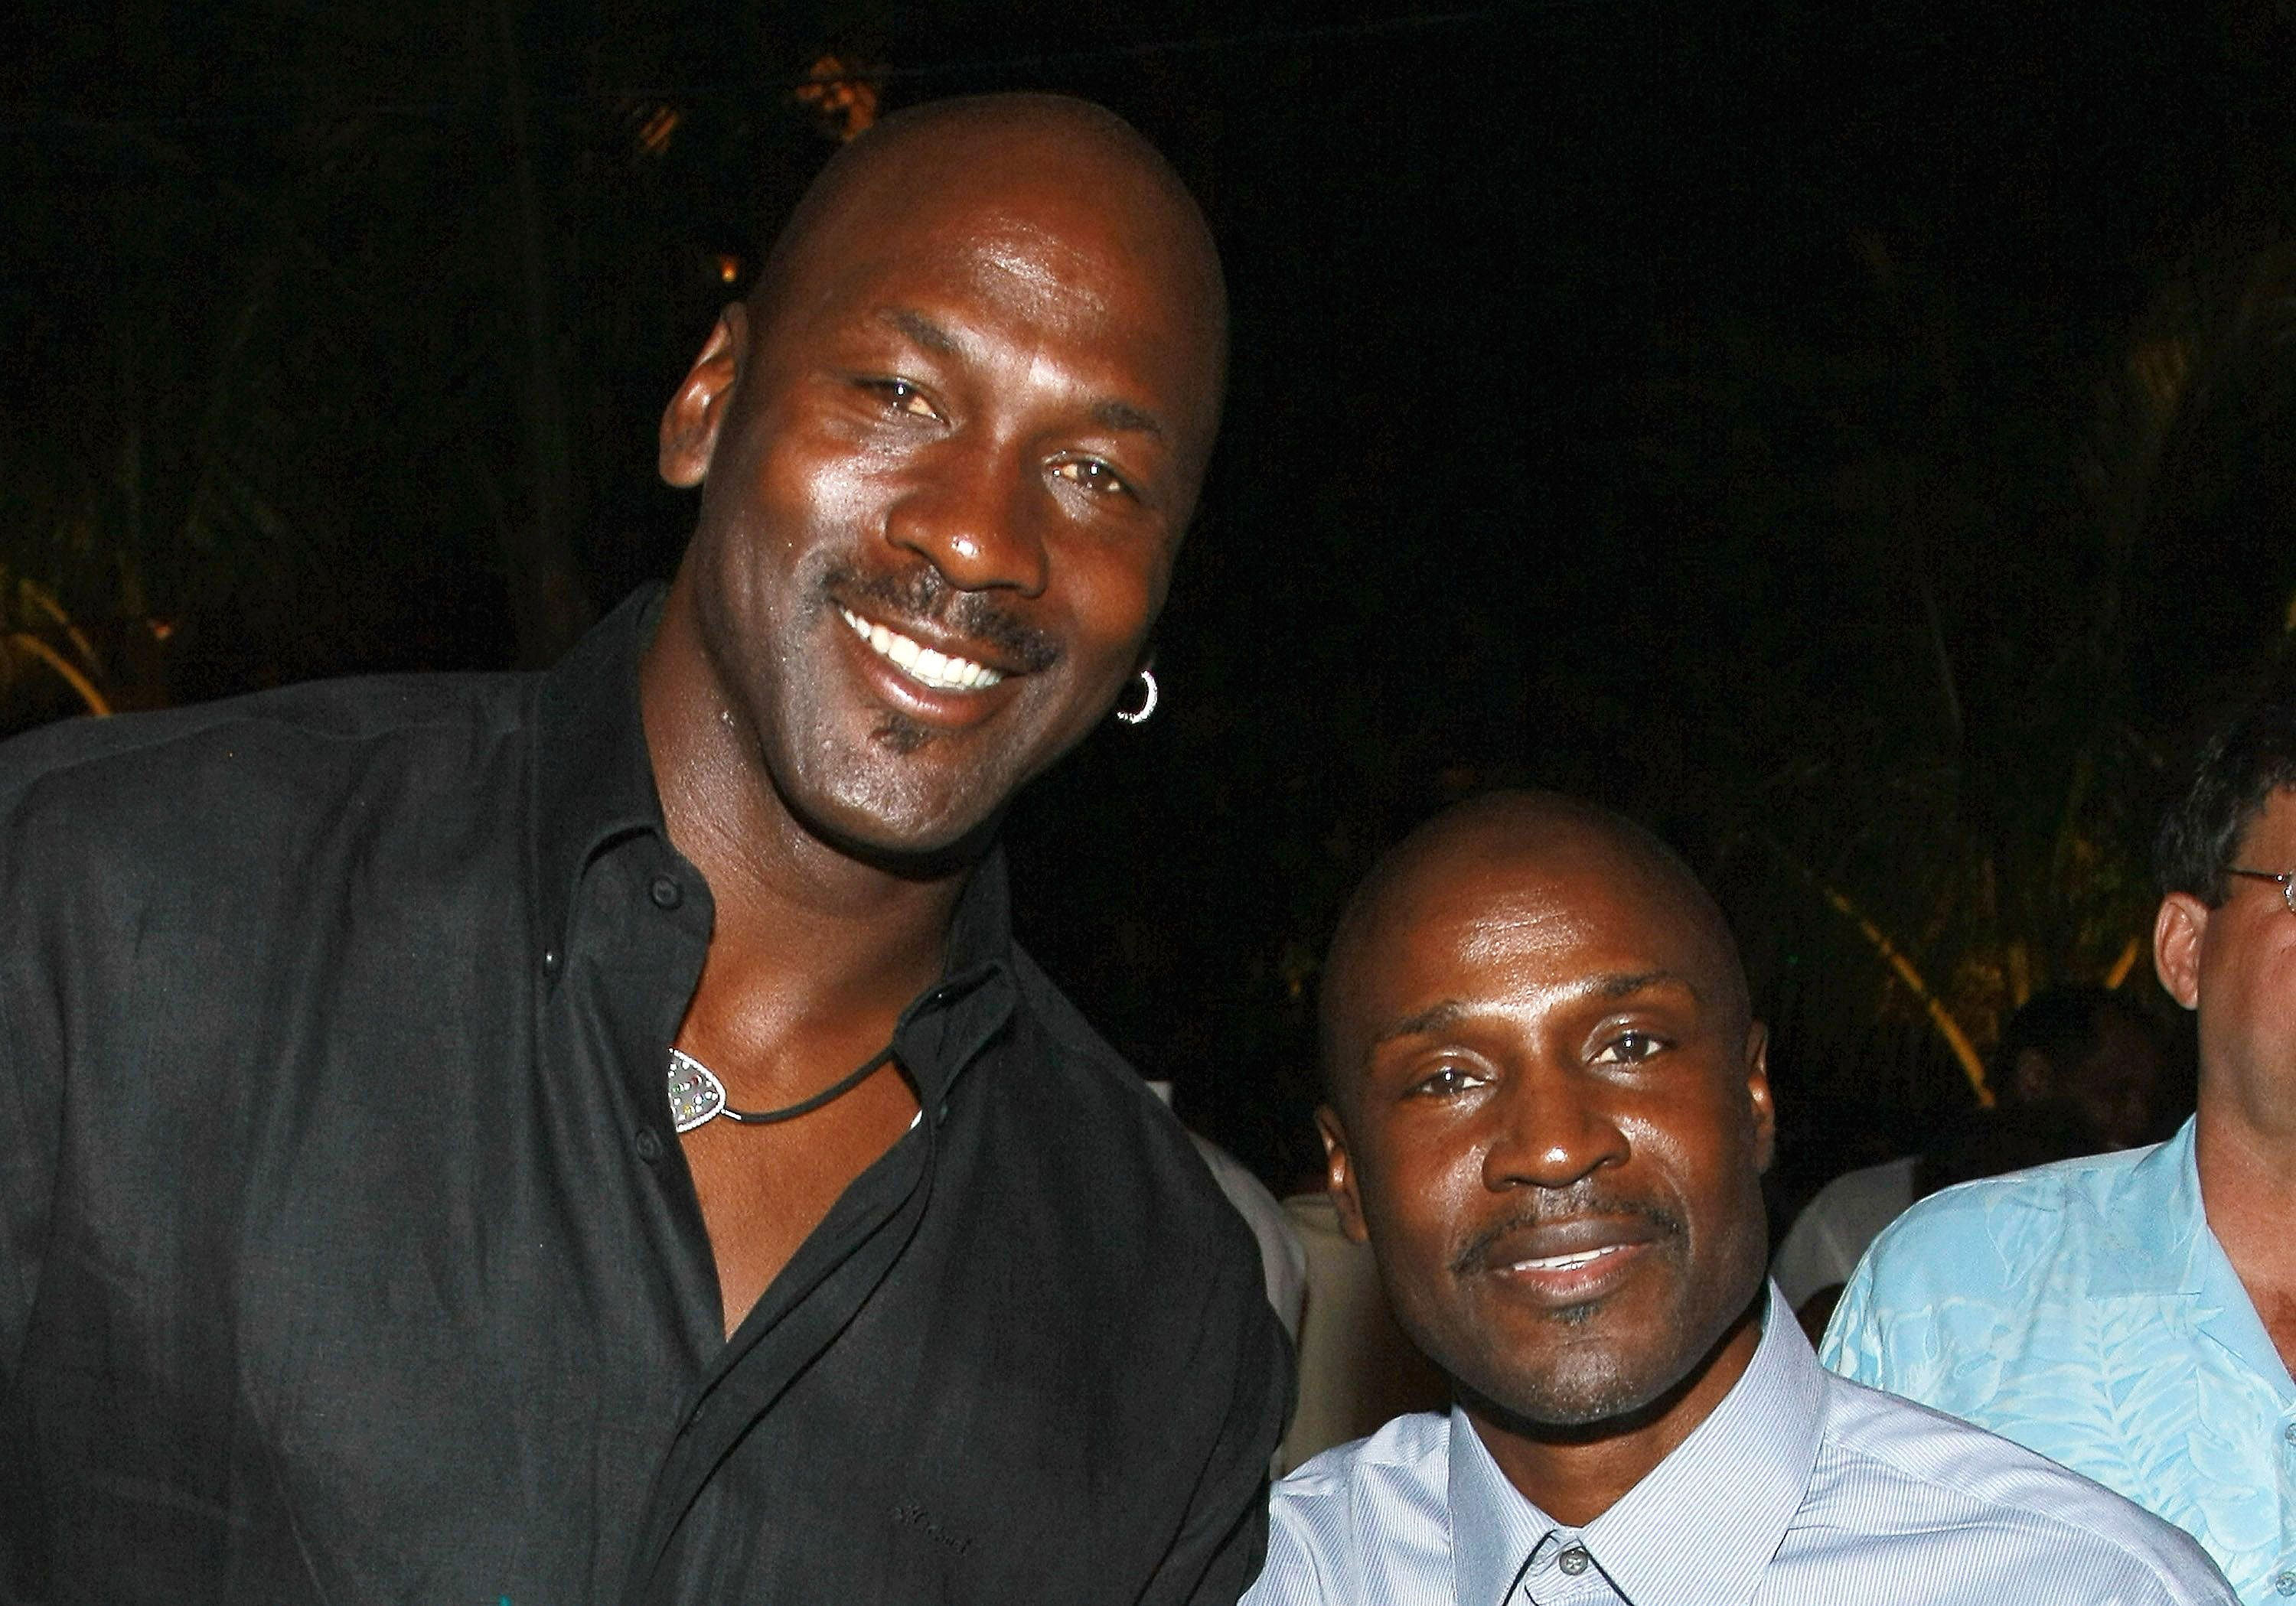 muy elogiado Promoción de ventas 100% autenticado Who Is Larry Jordan, Michael Jordan's Brother?